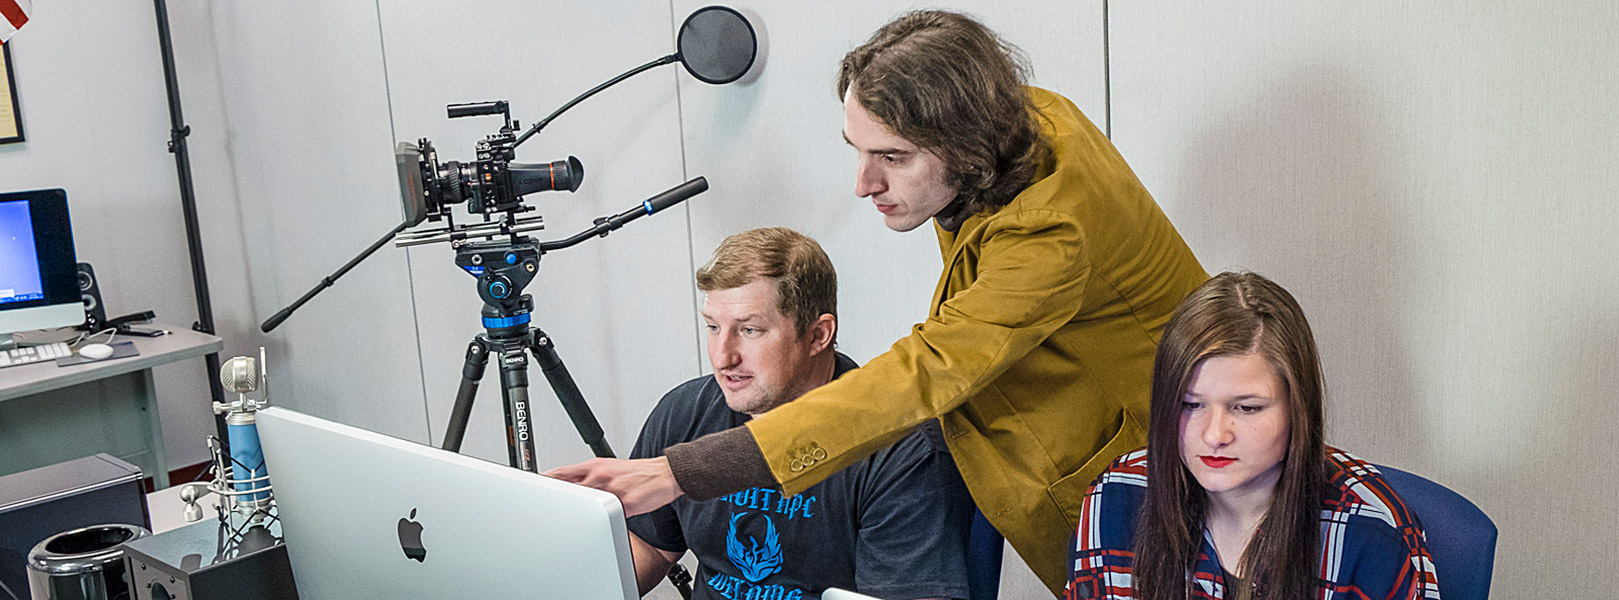 instructor helping student edit film on computer